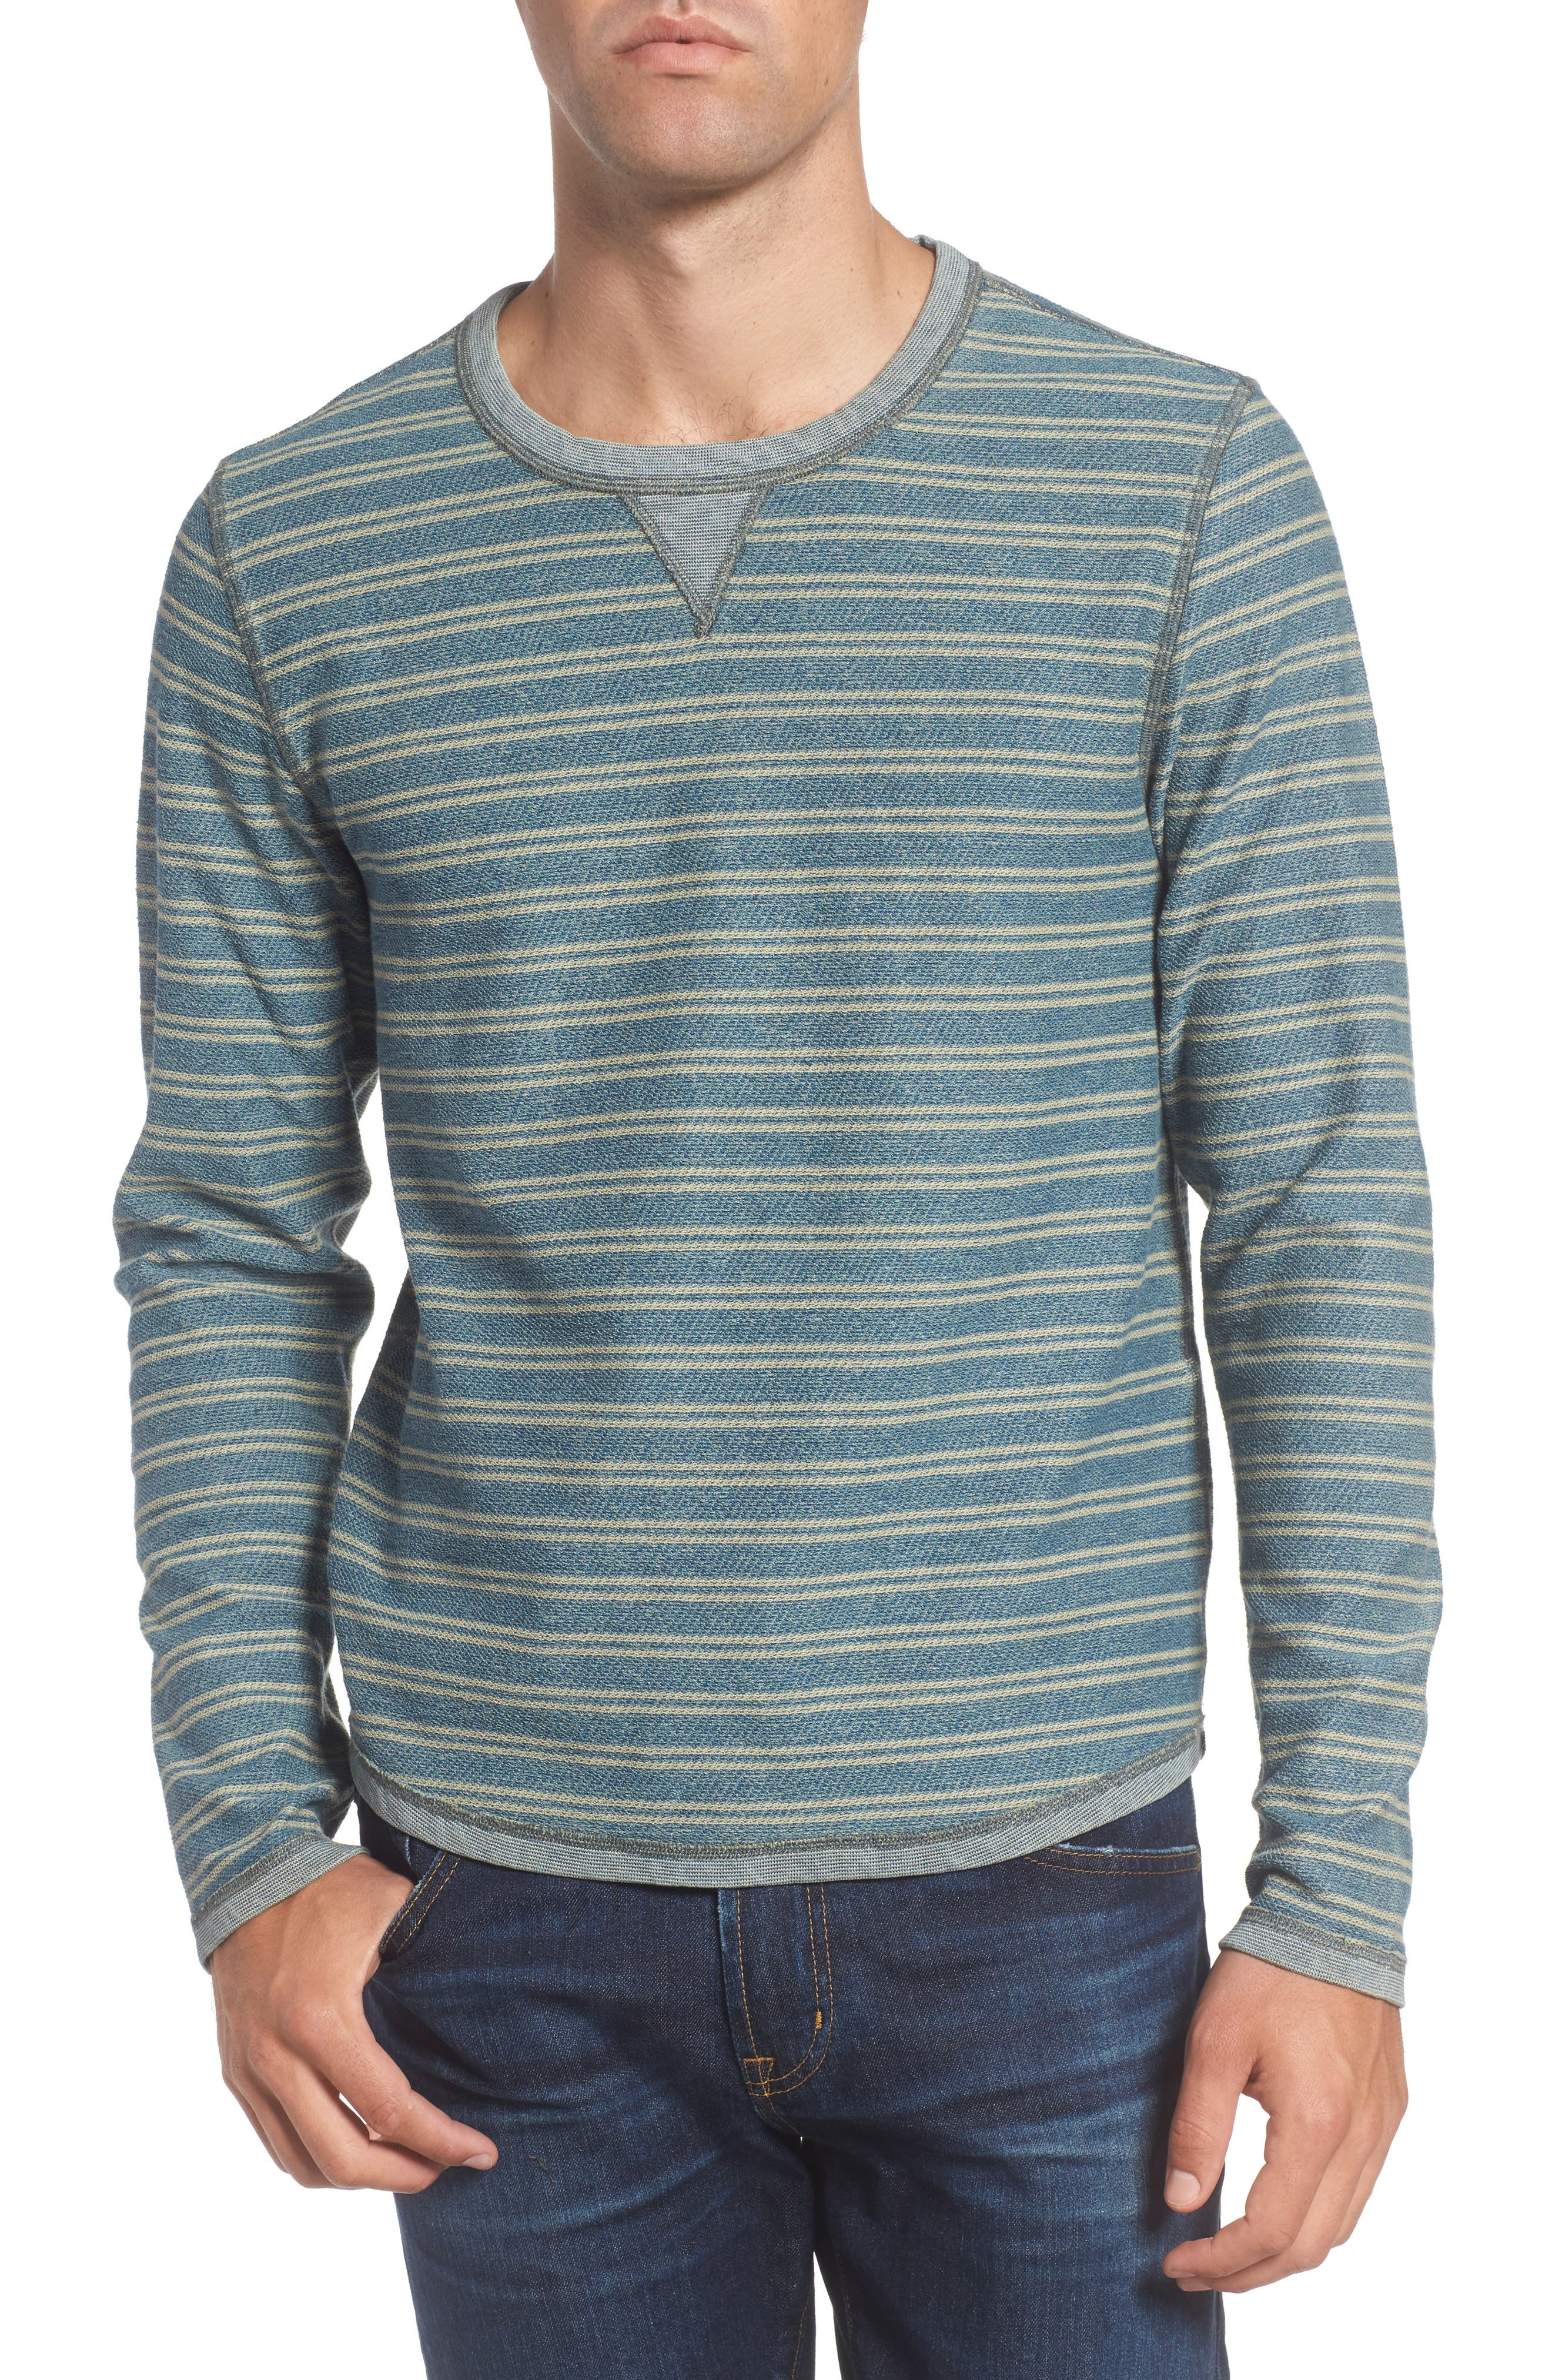 Strickland Reversible Crewneck Sweatshirt,                         Main,                         color, 424